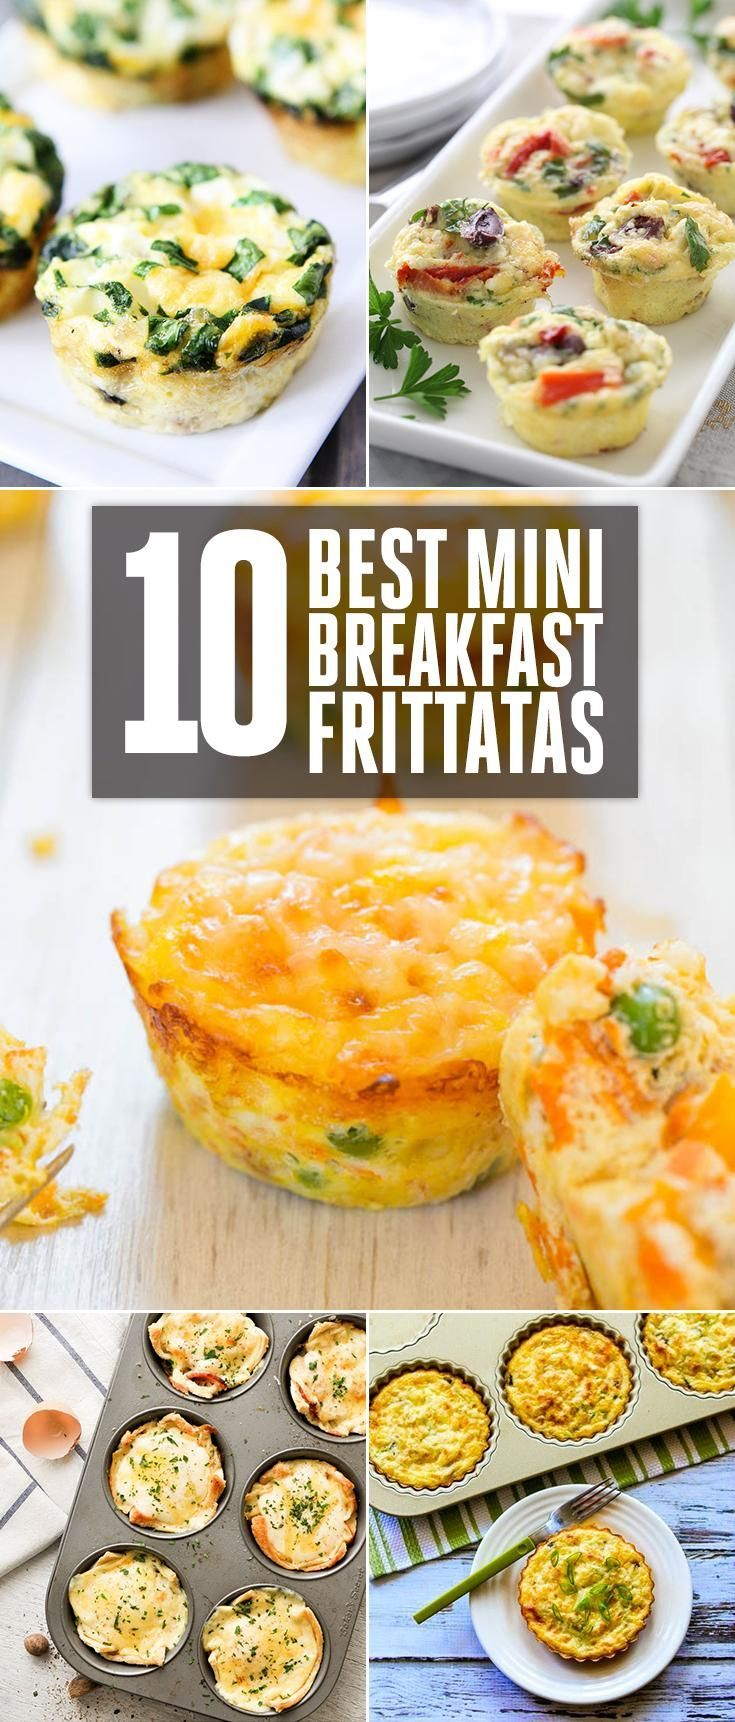 10 Best Mini Breakfast Frittatas - Mediterranean Mini Frittatas, Egg Muffins With Sausage, Spinach and Cheese, Mexican Breakfast Cup, Croque Madame Toastie Cups, Cheese/Vegetable and Egg Muffins, Spinach Artichoke Quiche Cups, Southwest Omelette Cups and  (mushroom and spinach quiche dinners)